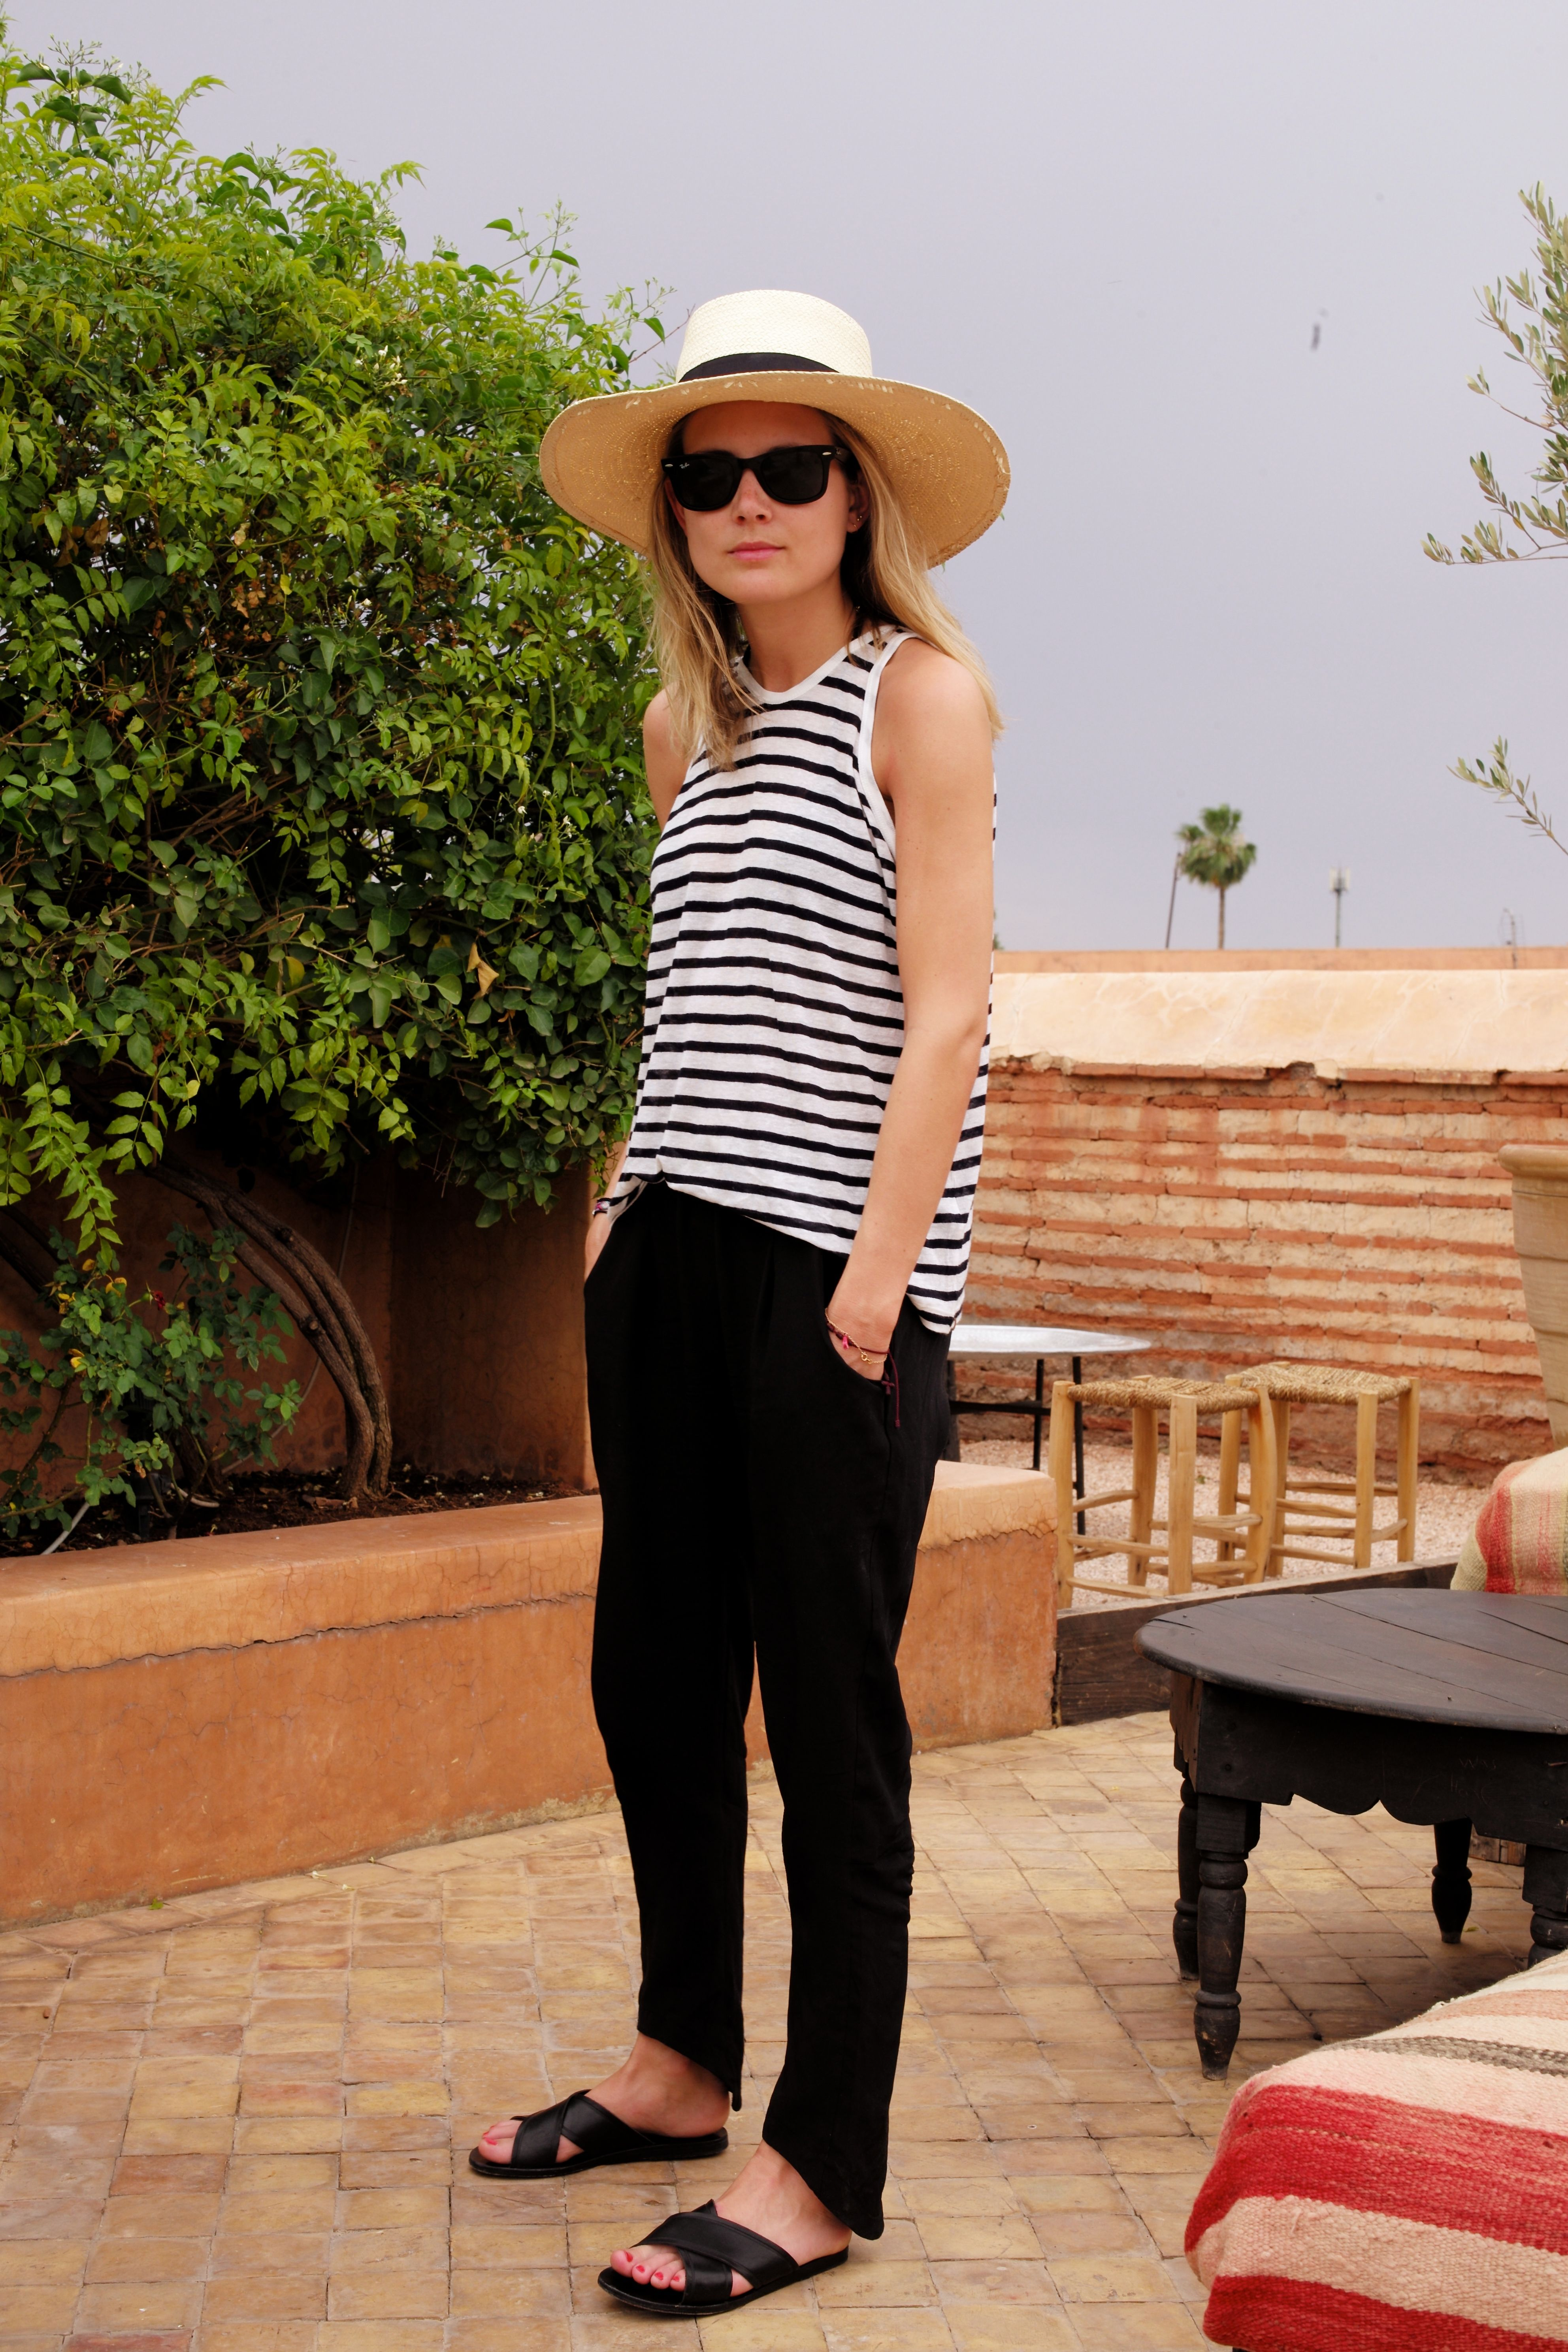 Summer hat, striped tank top, black slouchy pants + slide sandals | Fashion Me Now | @styleminimalism